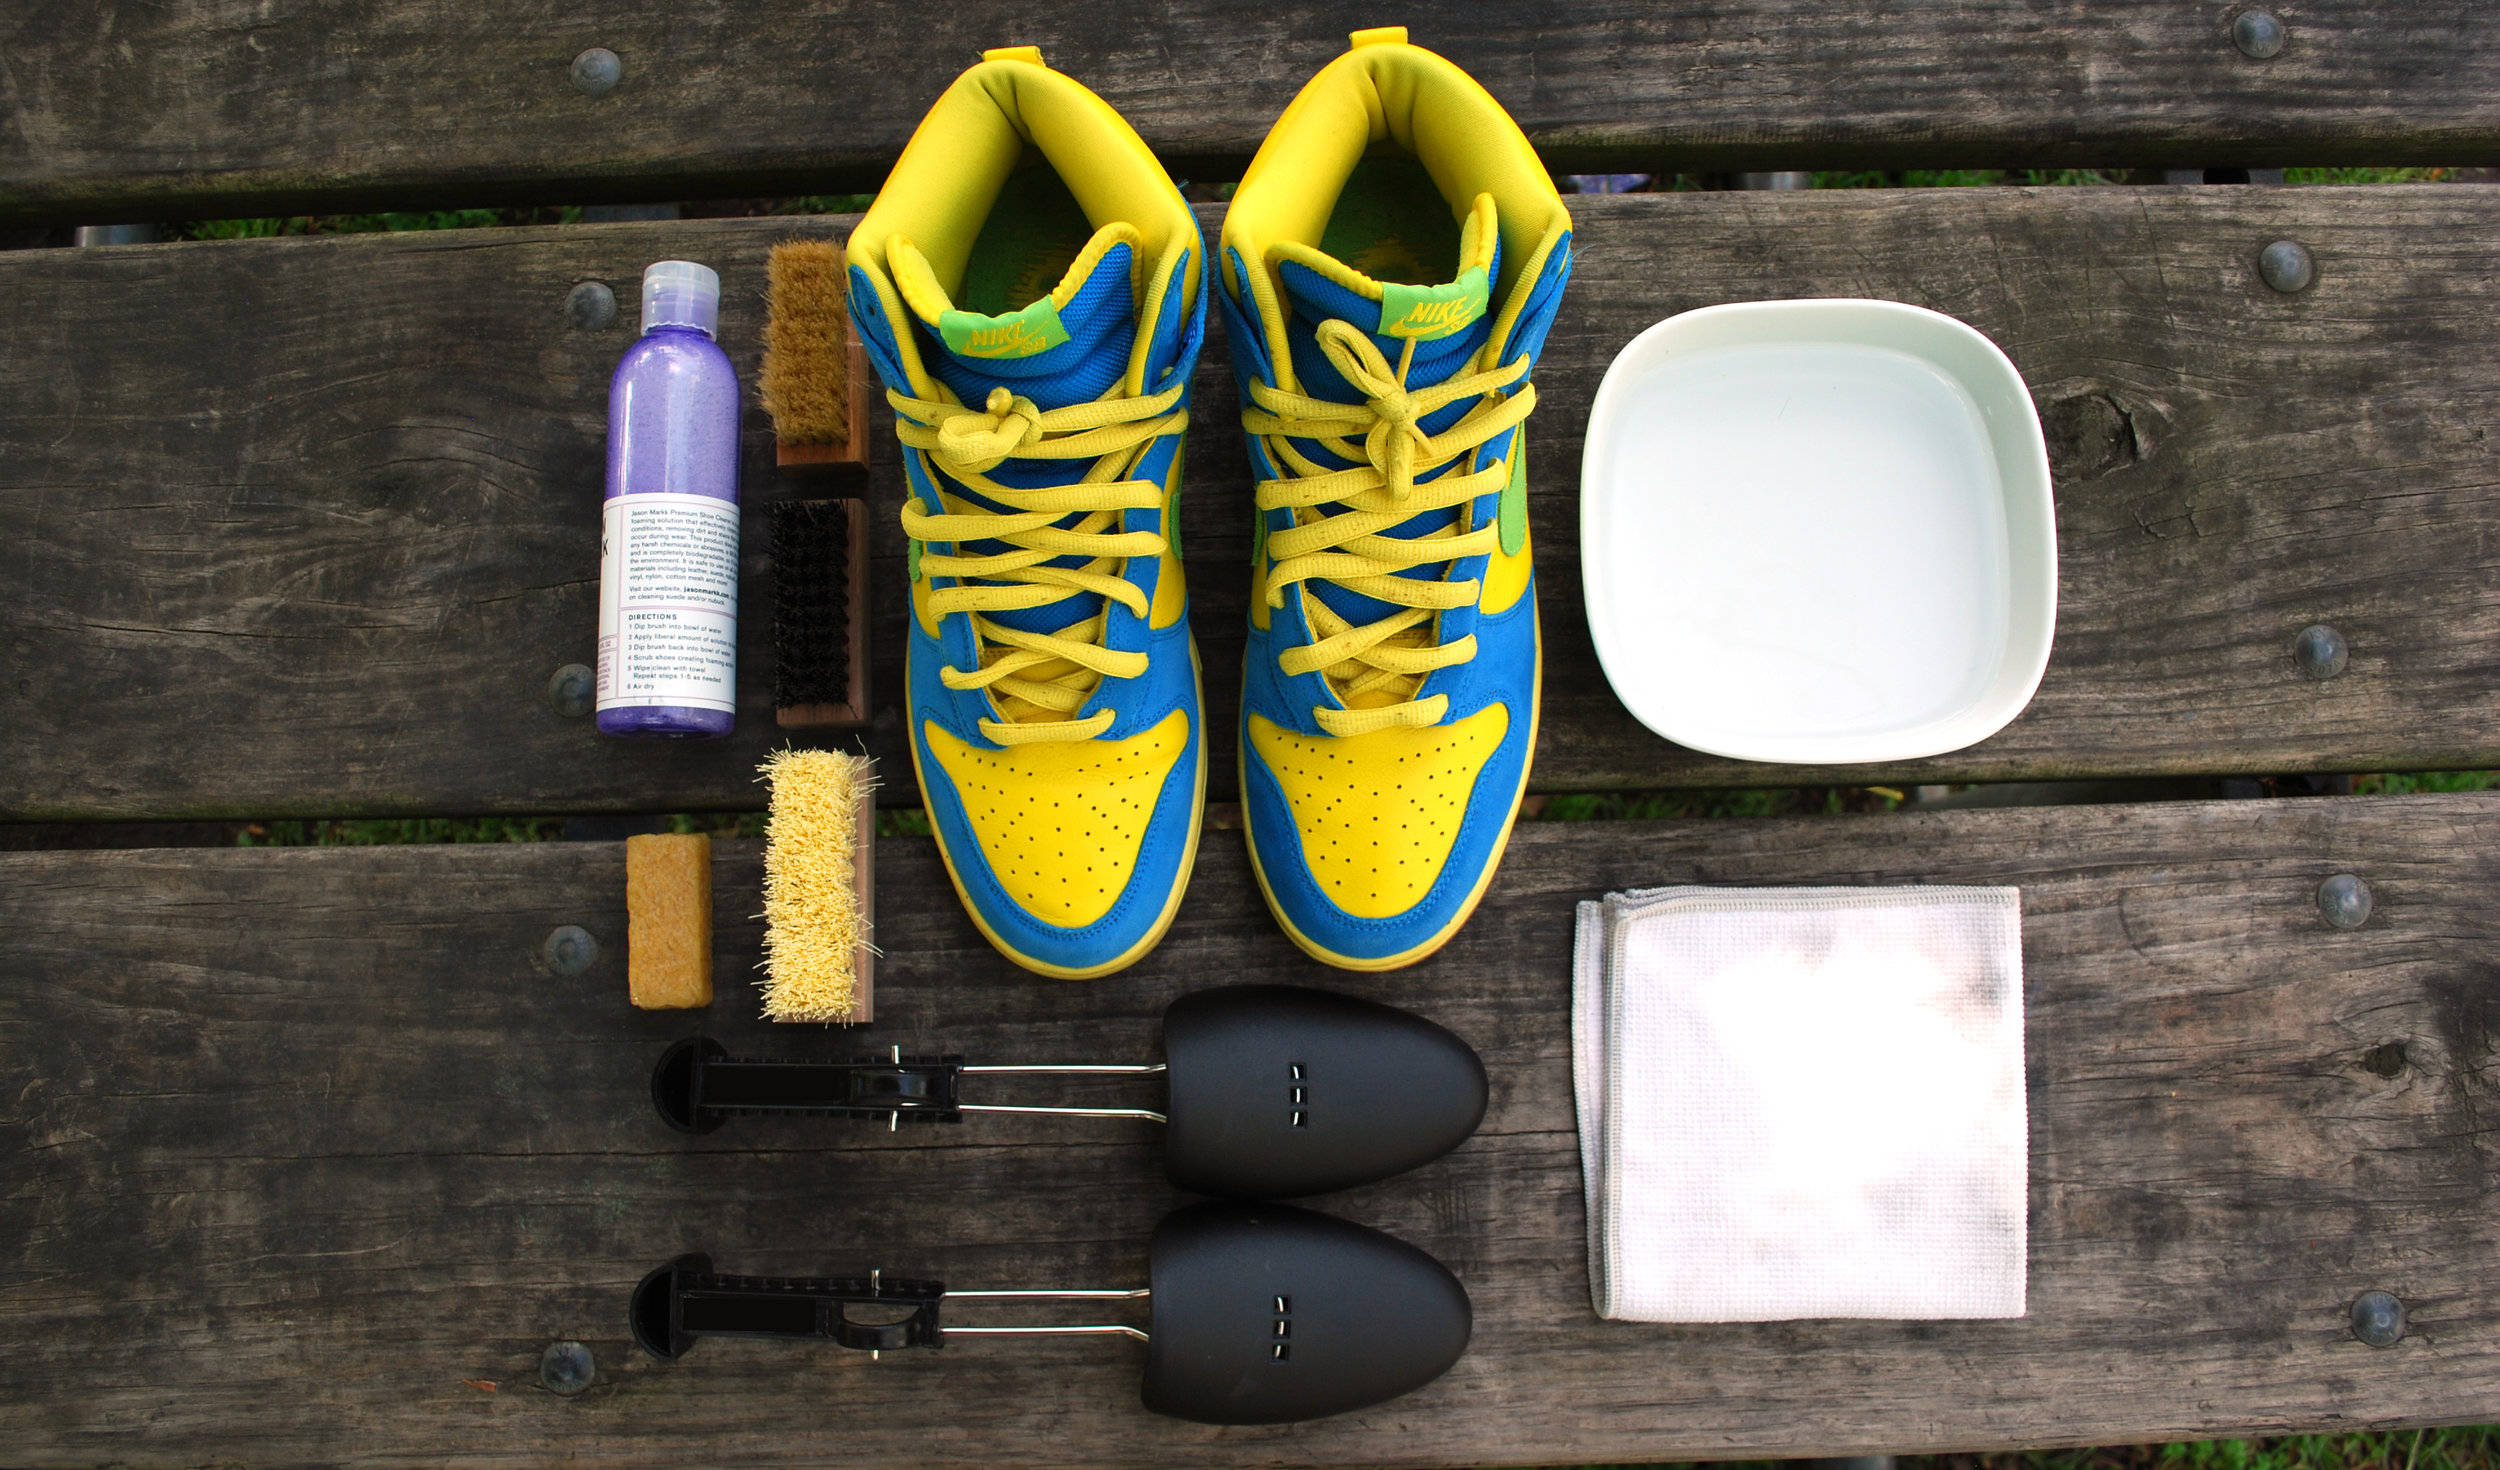 TOP QUALITY SNEAKER CLEANING PRODUCTS AND MATERIALS -